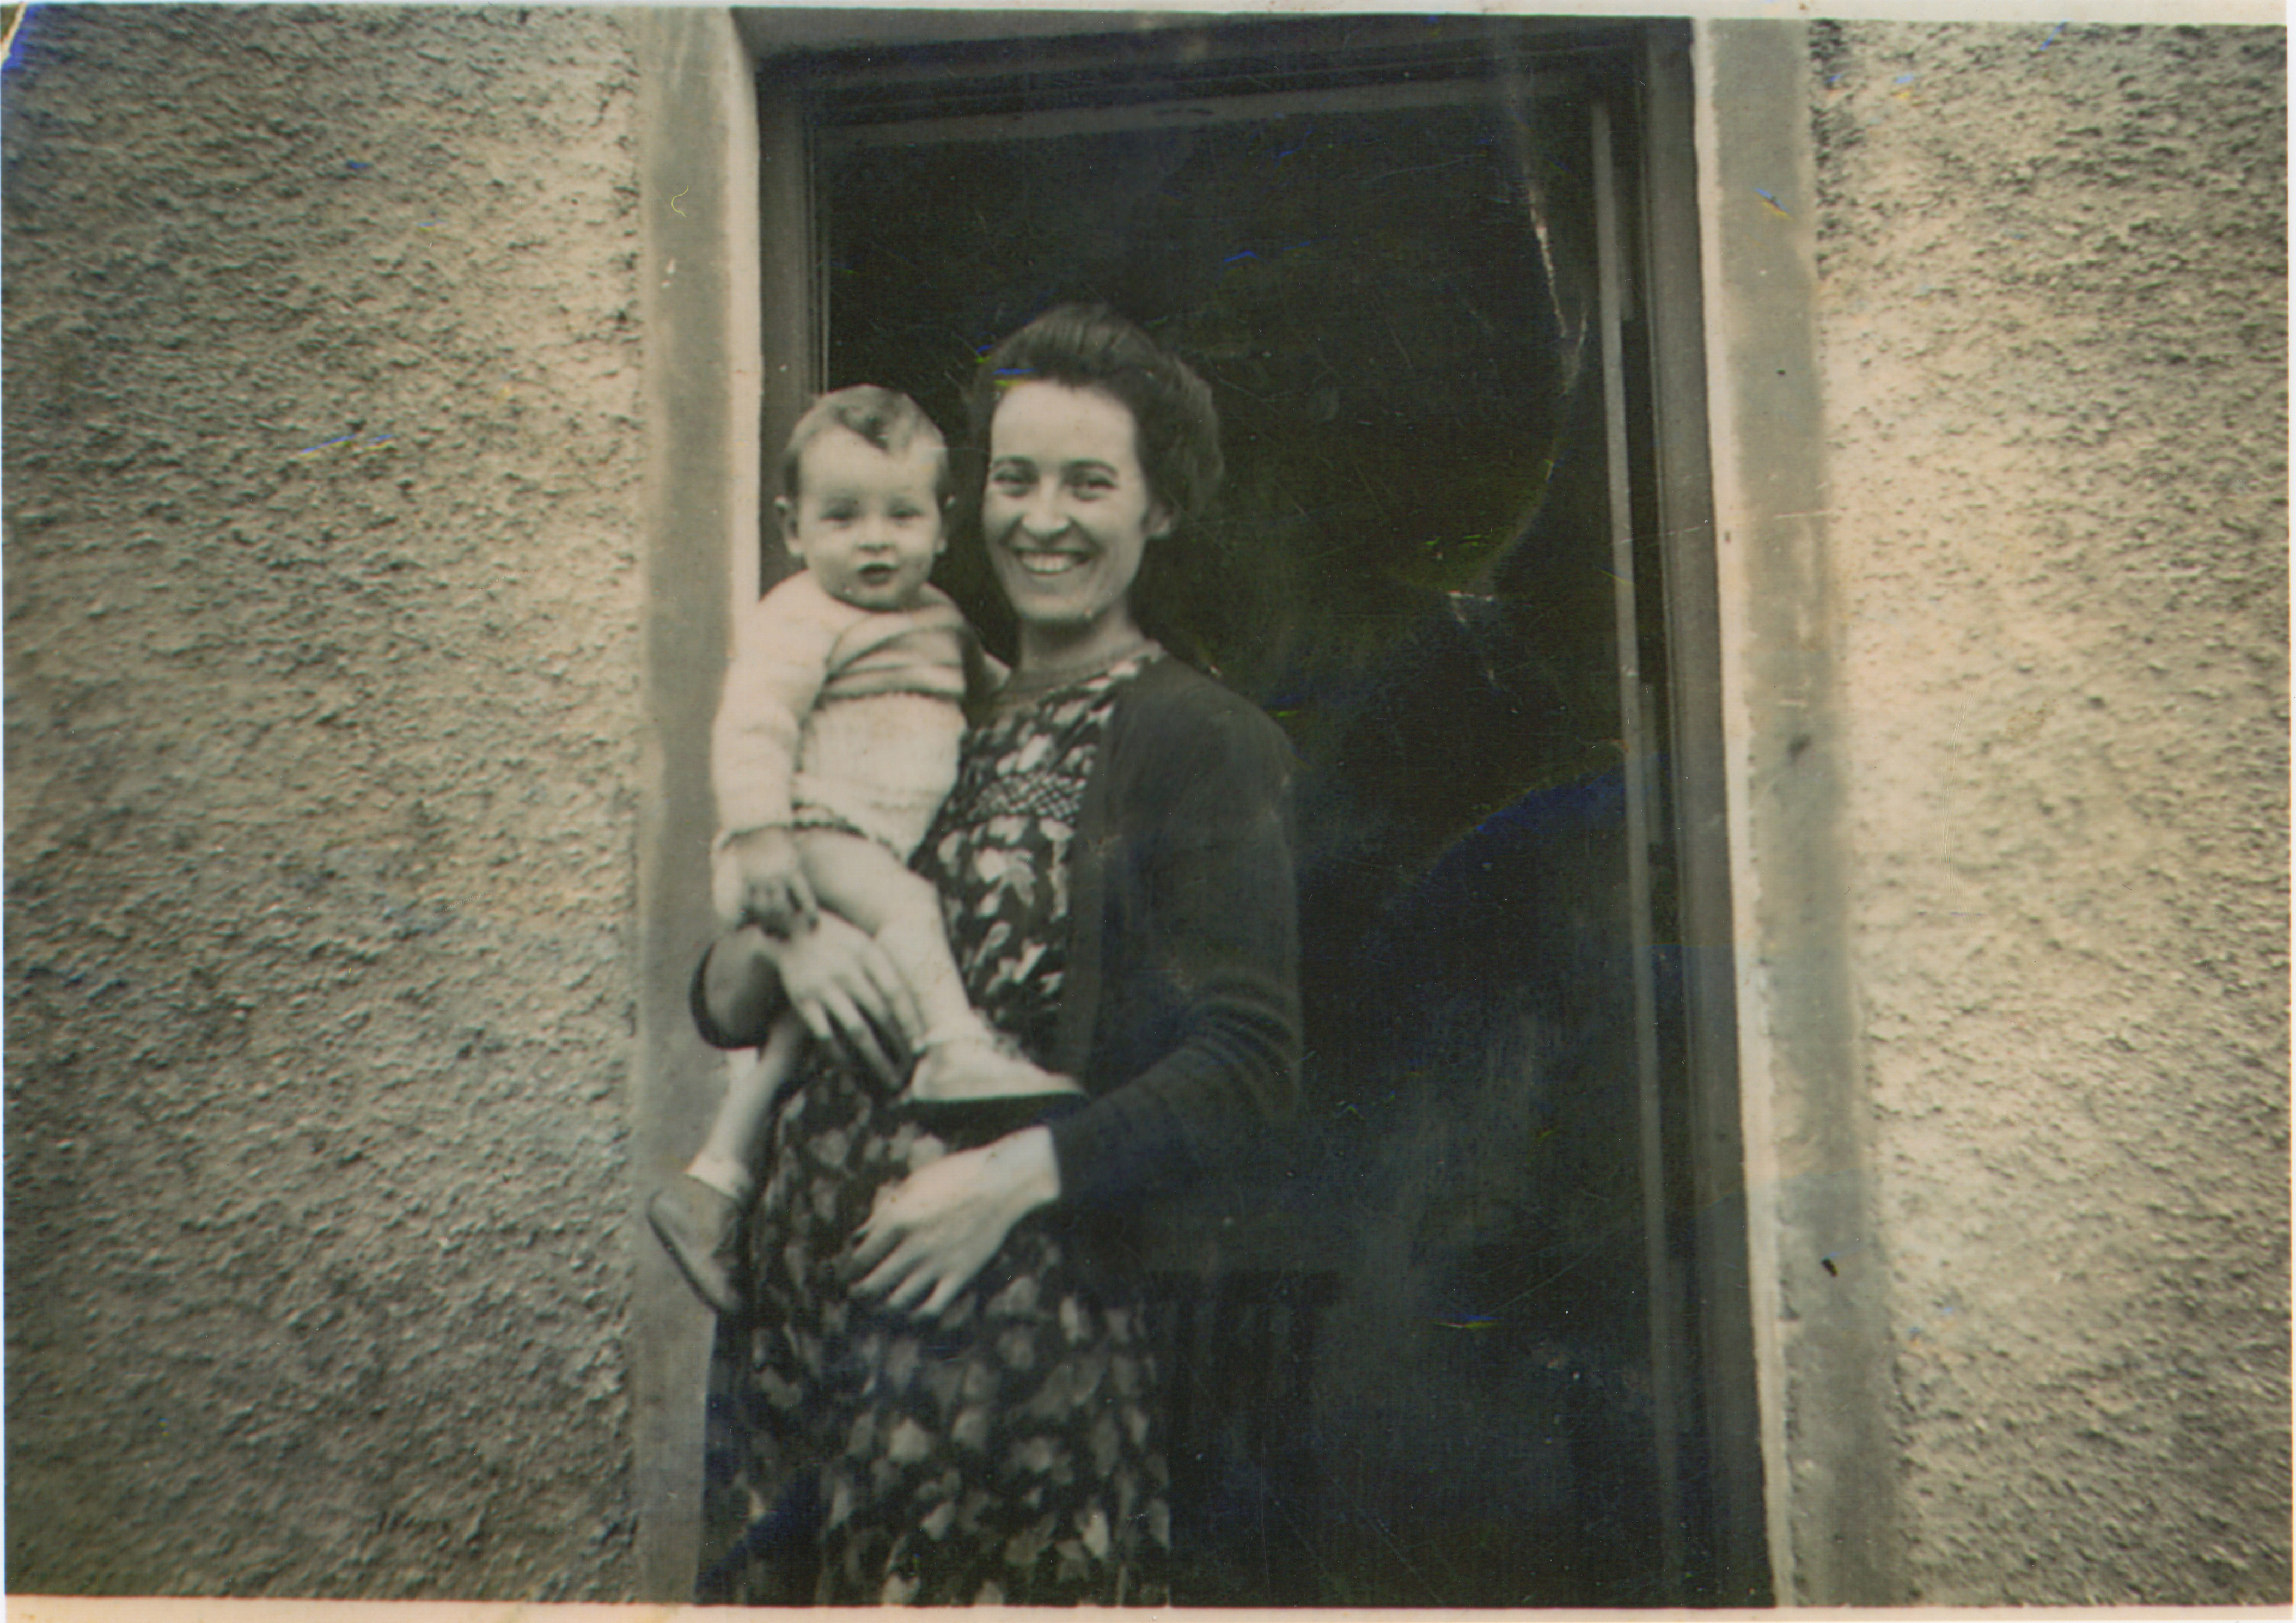 4.Dowling and his mother 1950